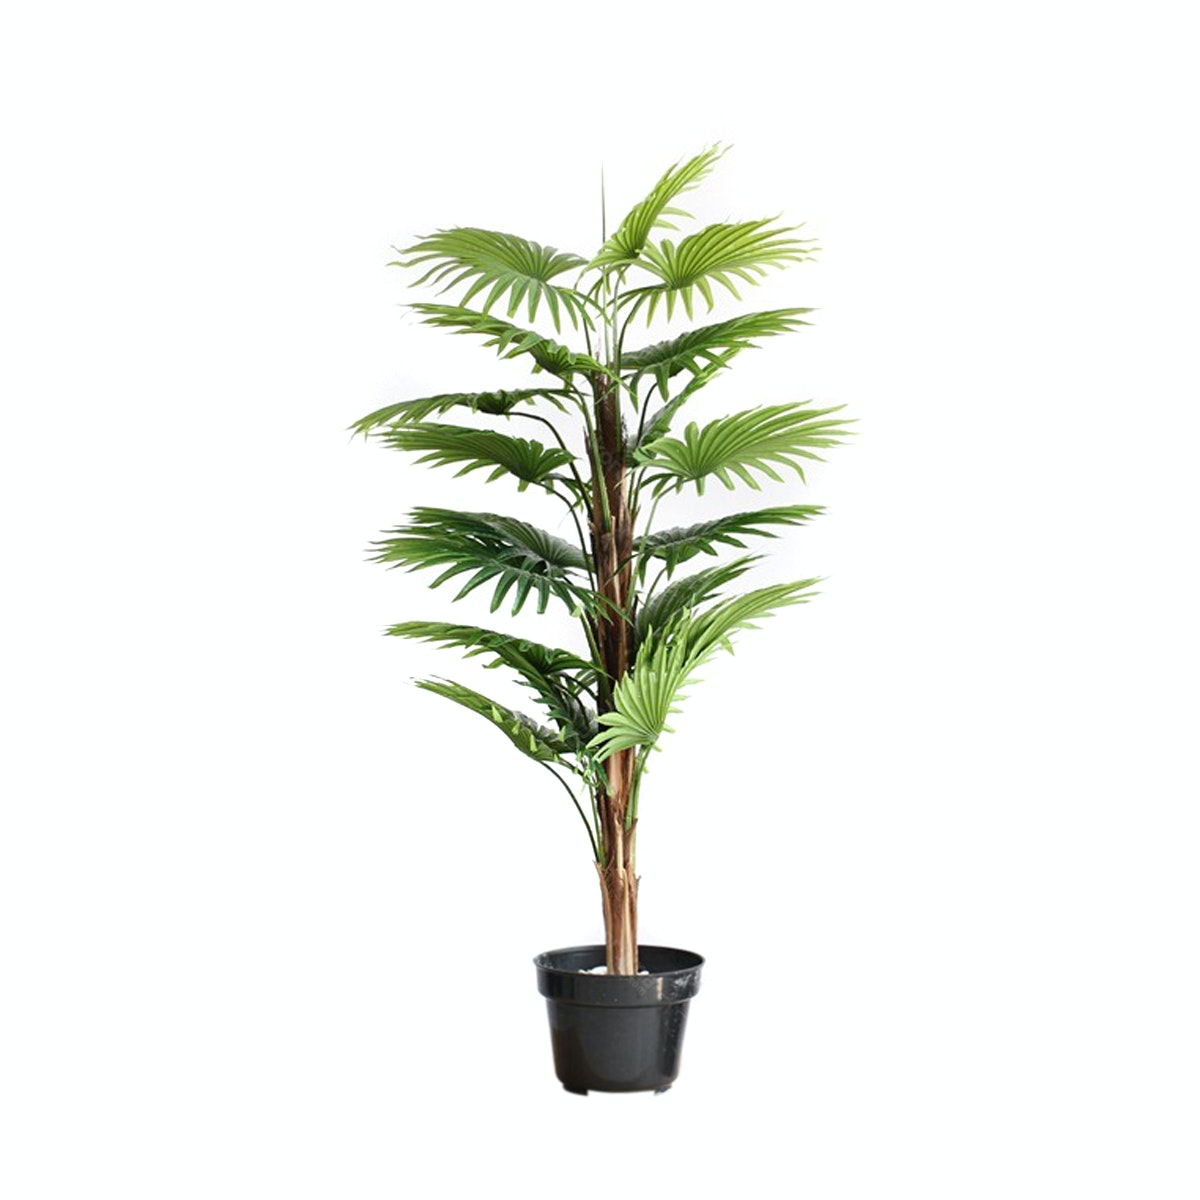 Thema Home Artificial Plant 2397 Fan Kwai A3